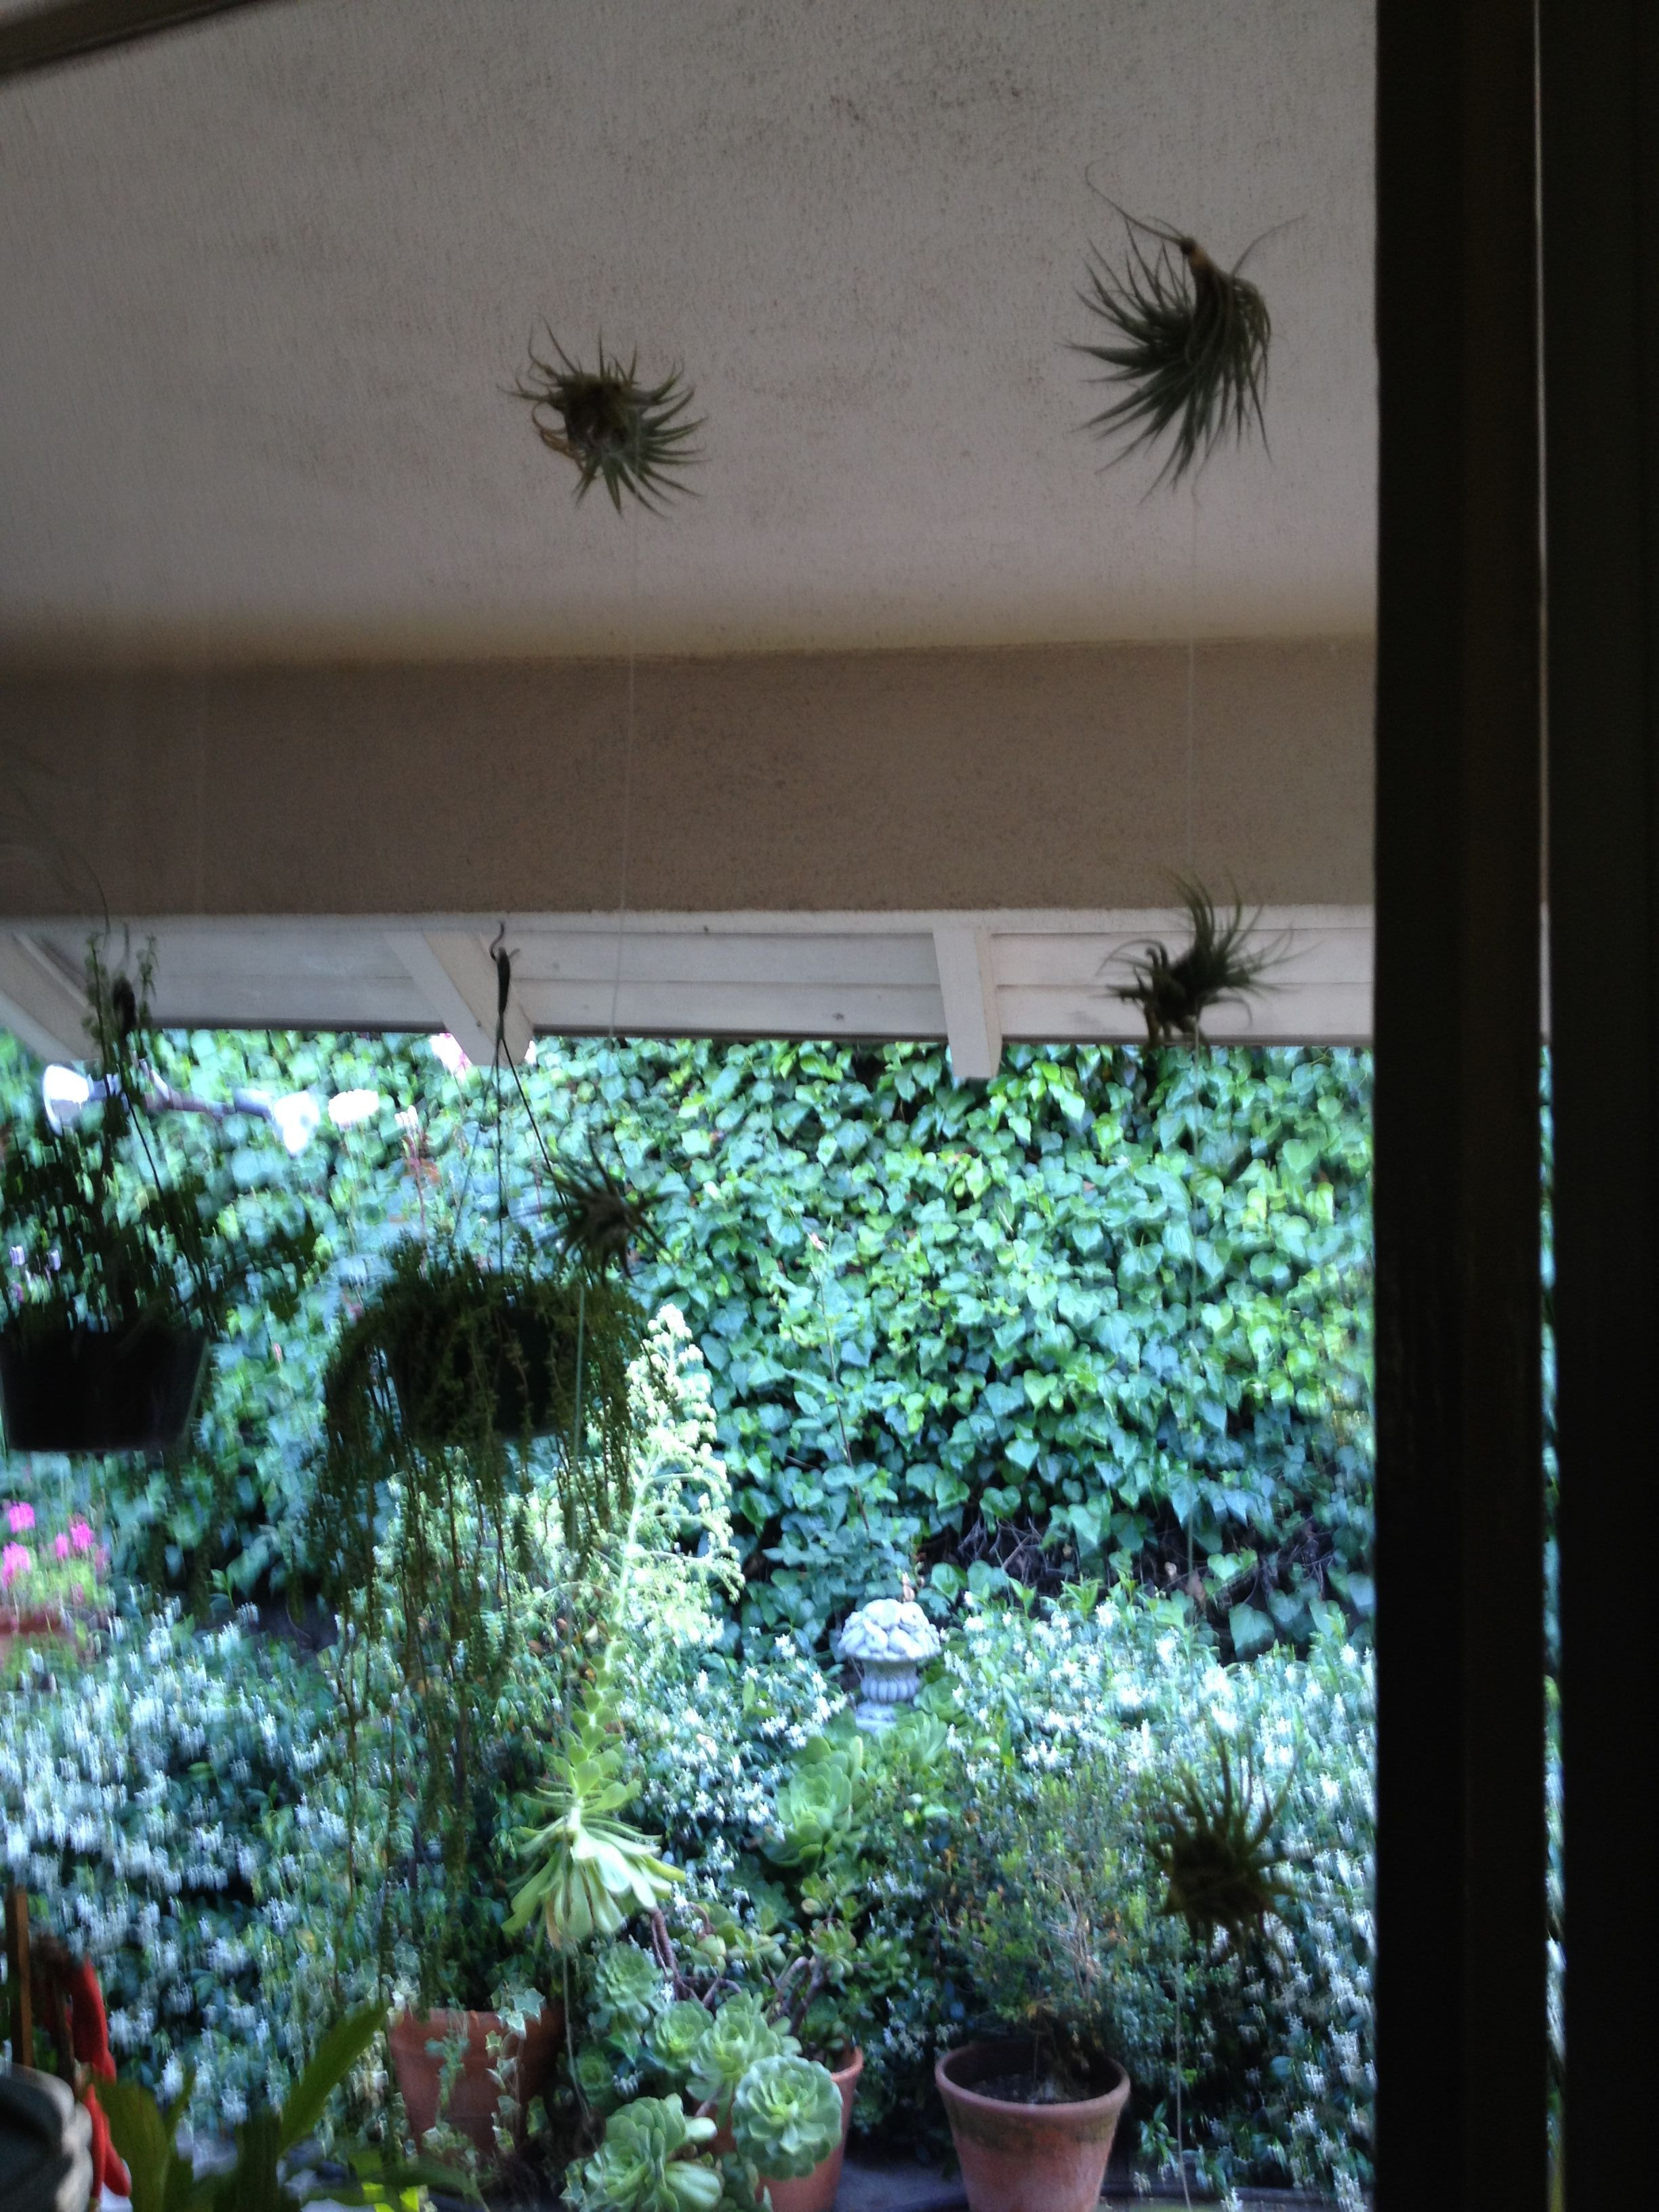 Coming together think i may add more air plants to our